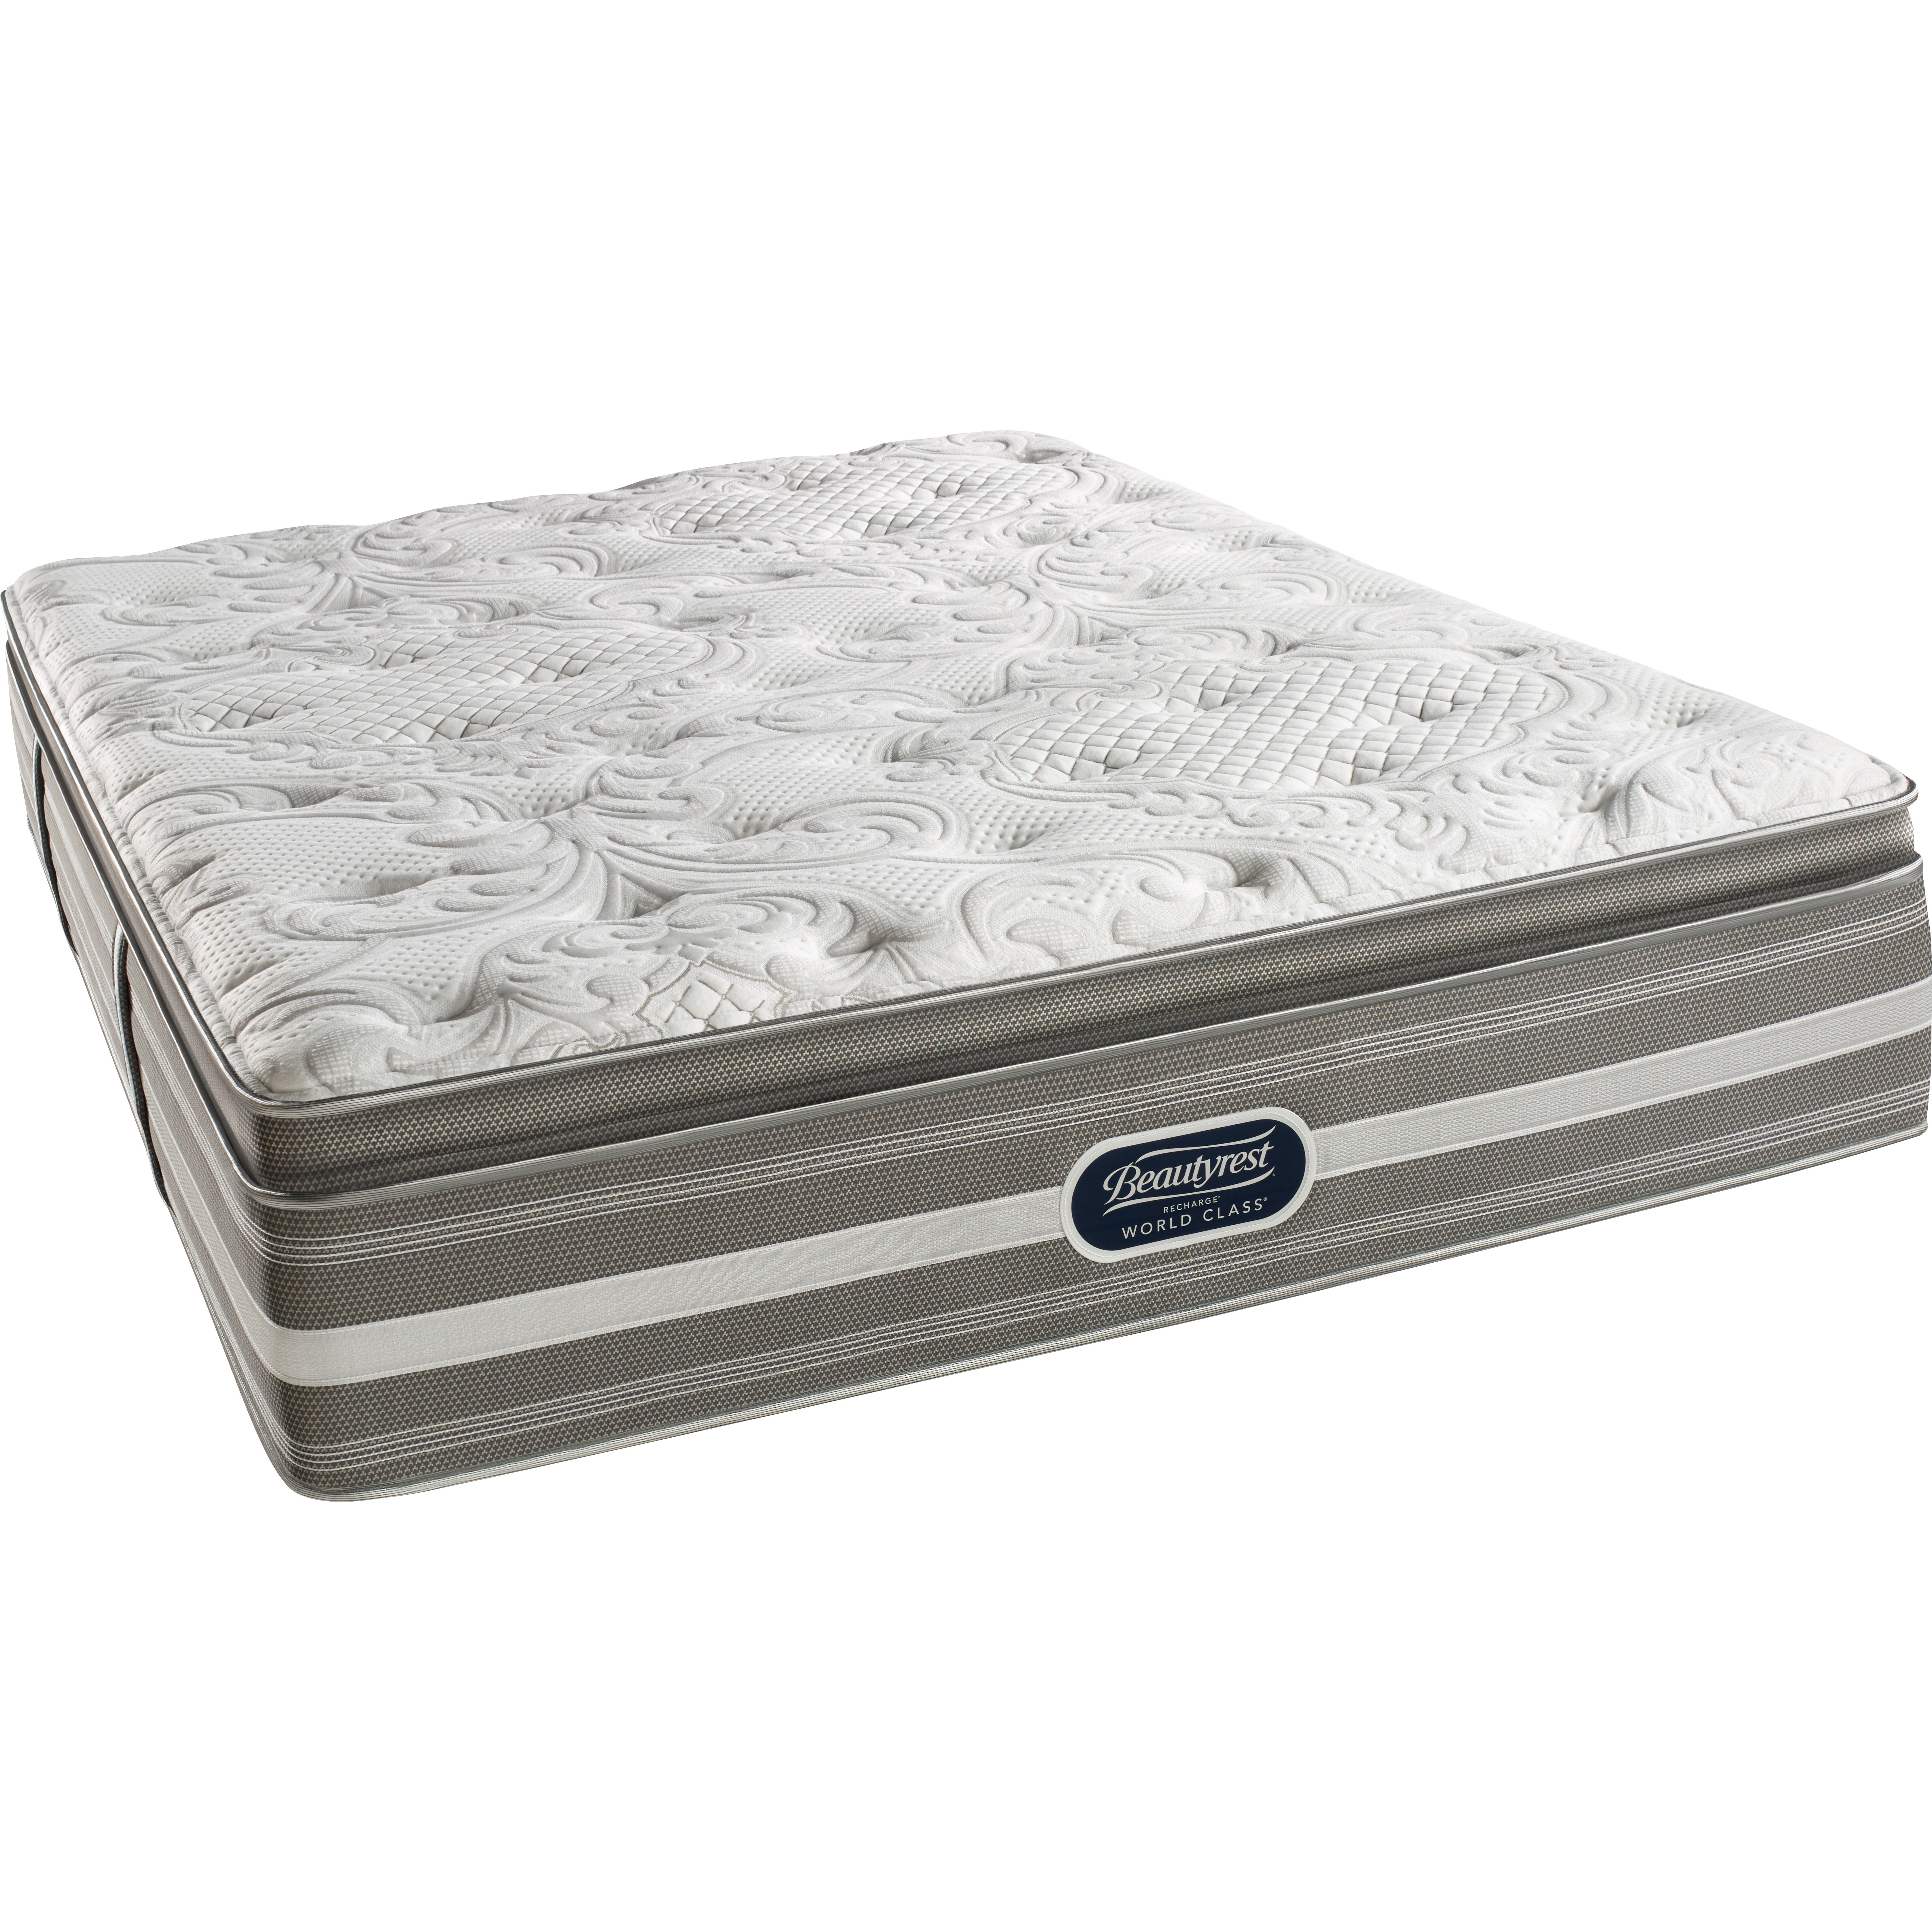 Pillow Top Mattress: Simmons Beautyrest BeautyRest Recharge World Class Coral